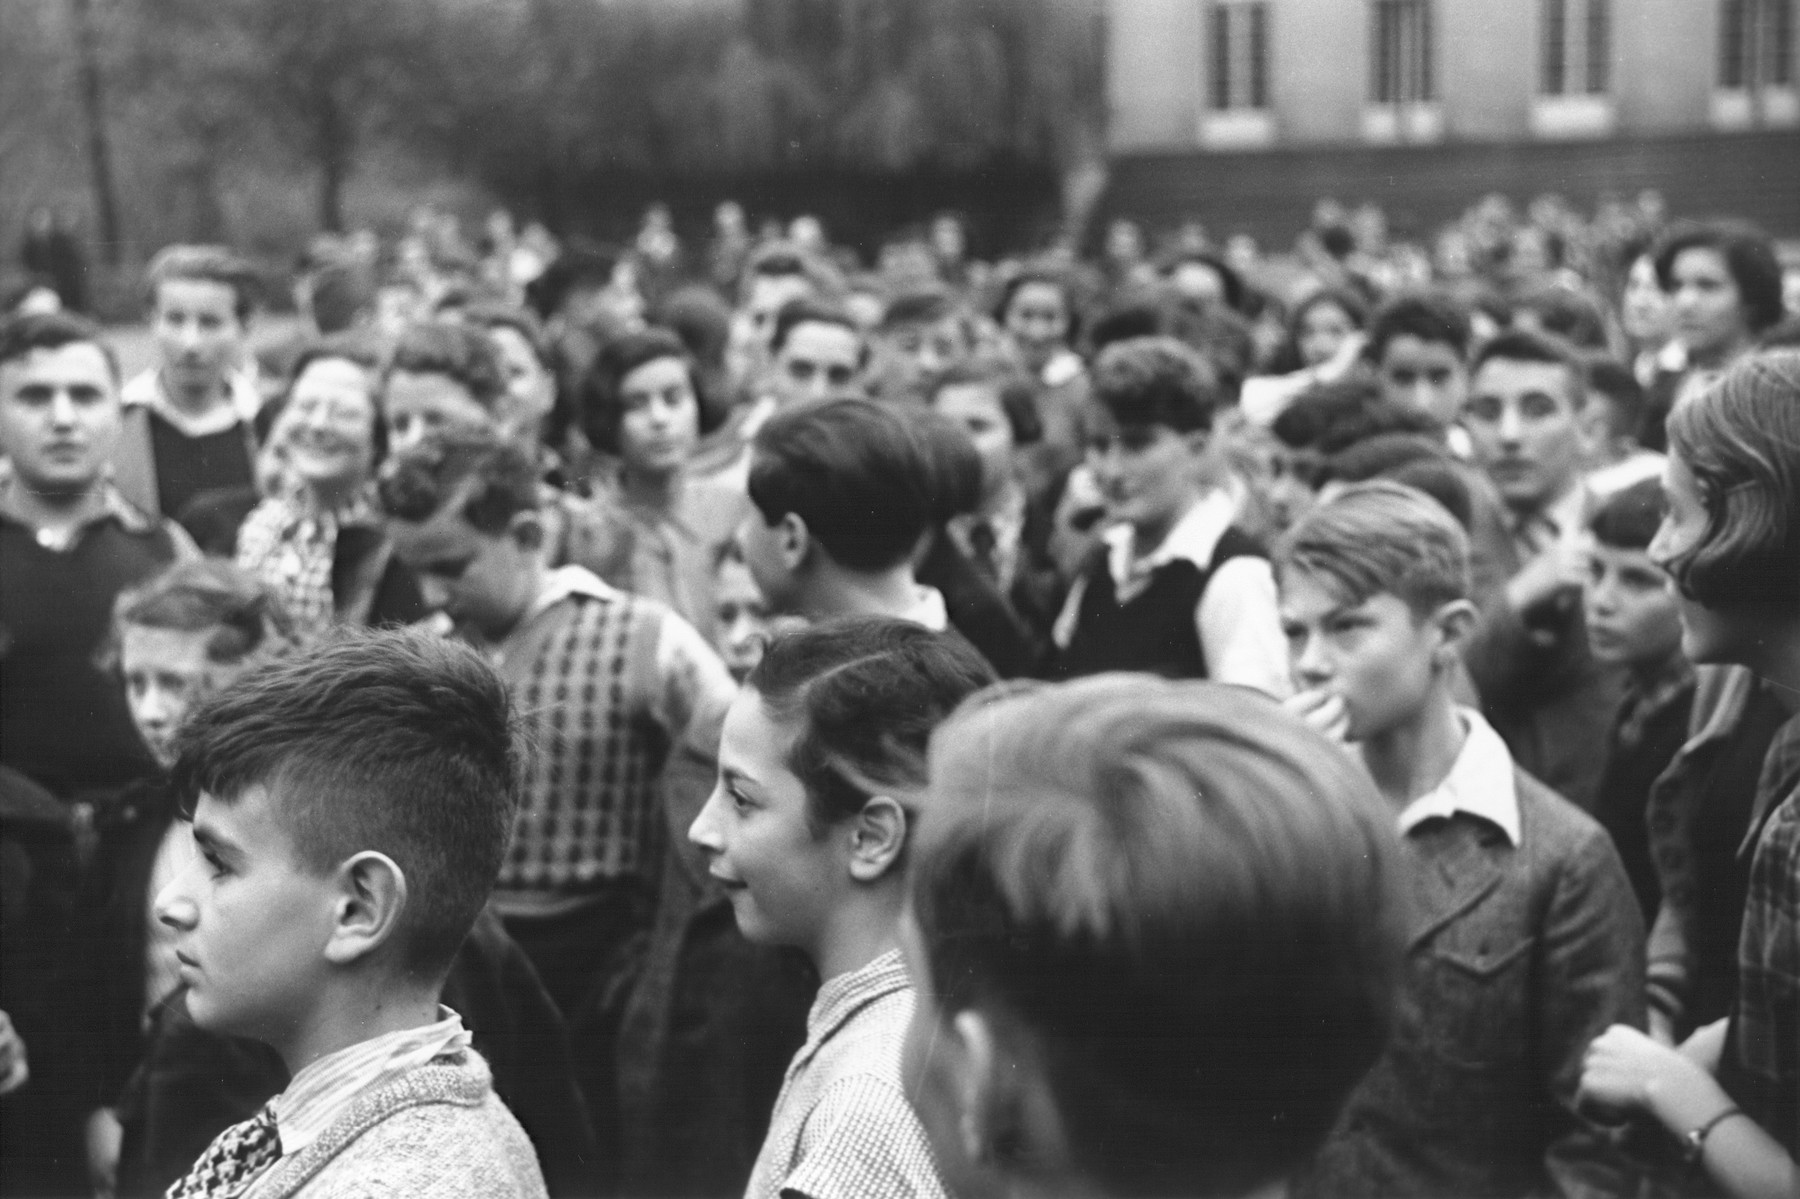 A crowd of teenage students are gathered outside on the grounds of the Goldschmidt Jewish private school in Berlin-Grunewald.